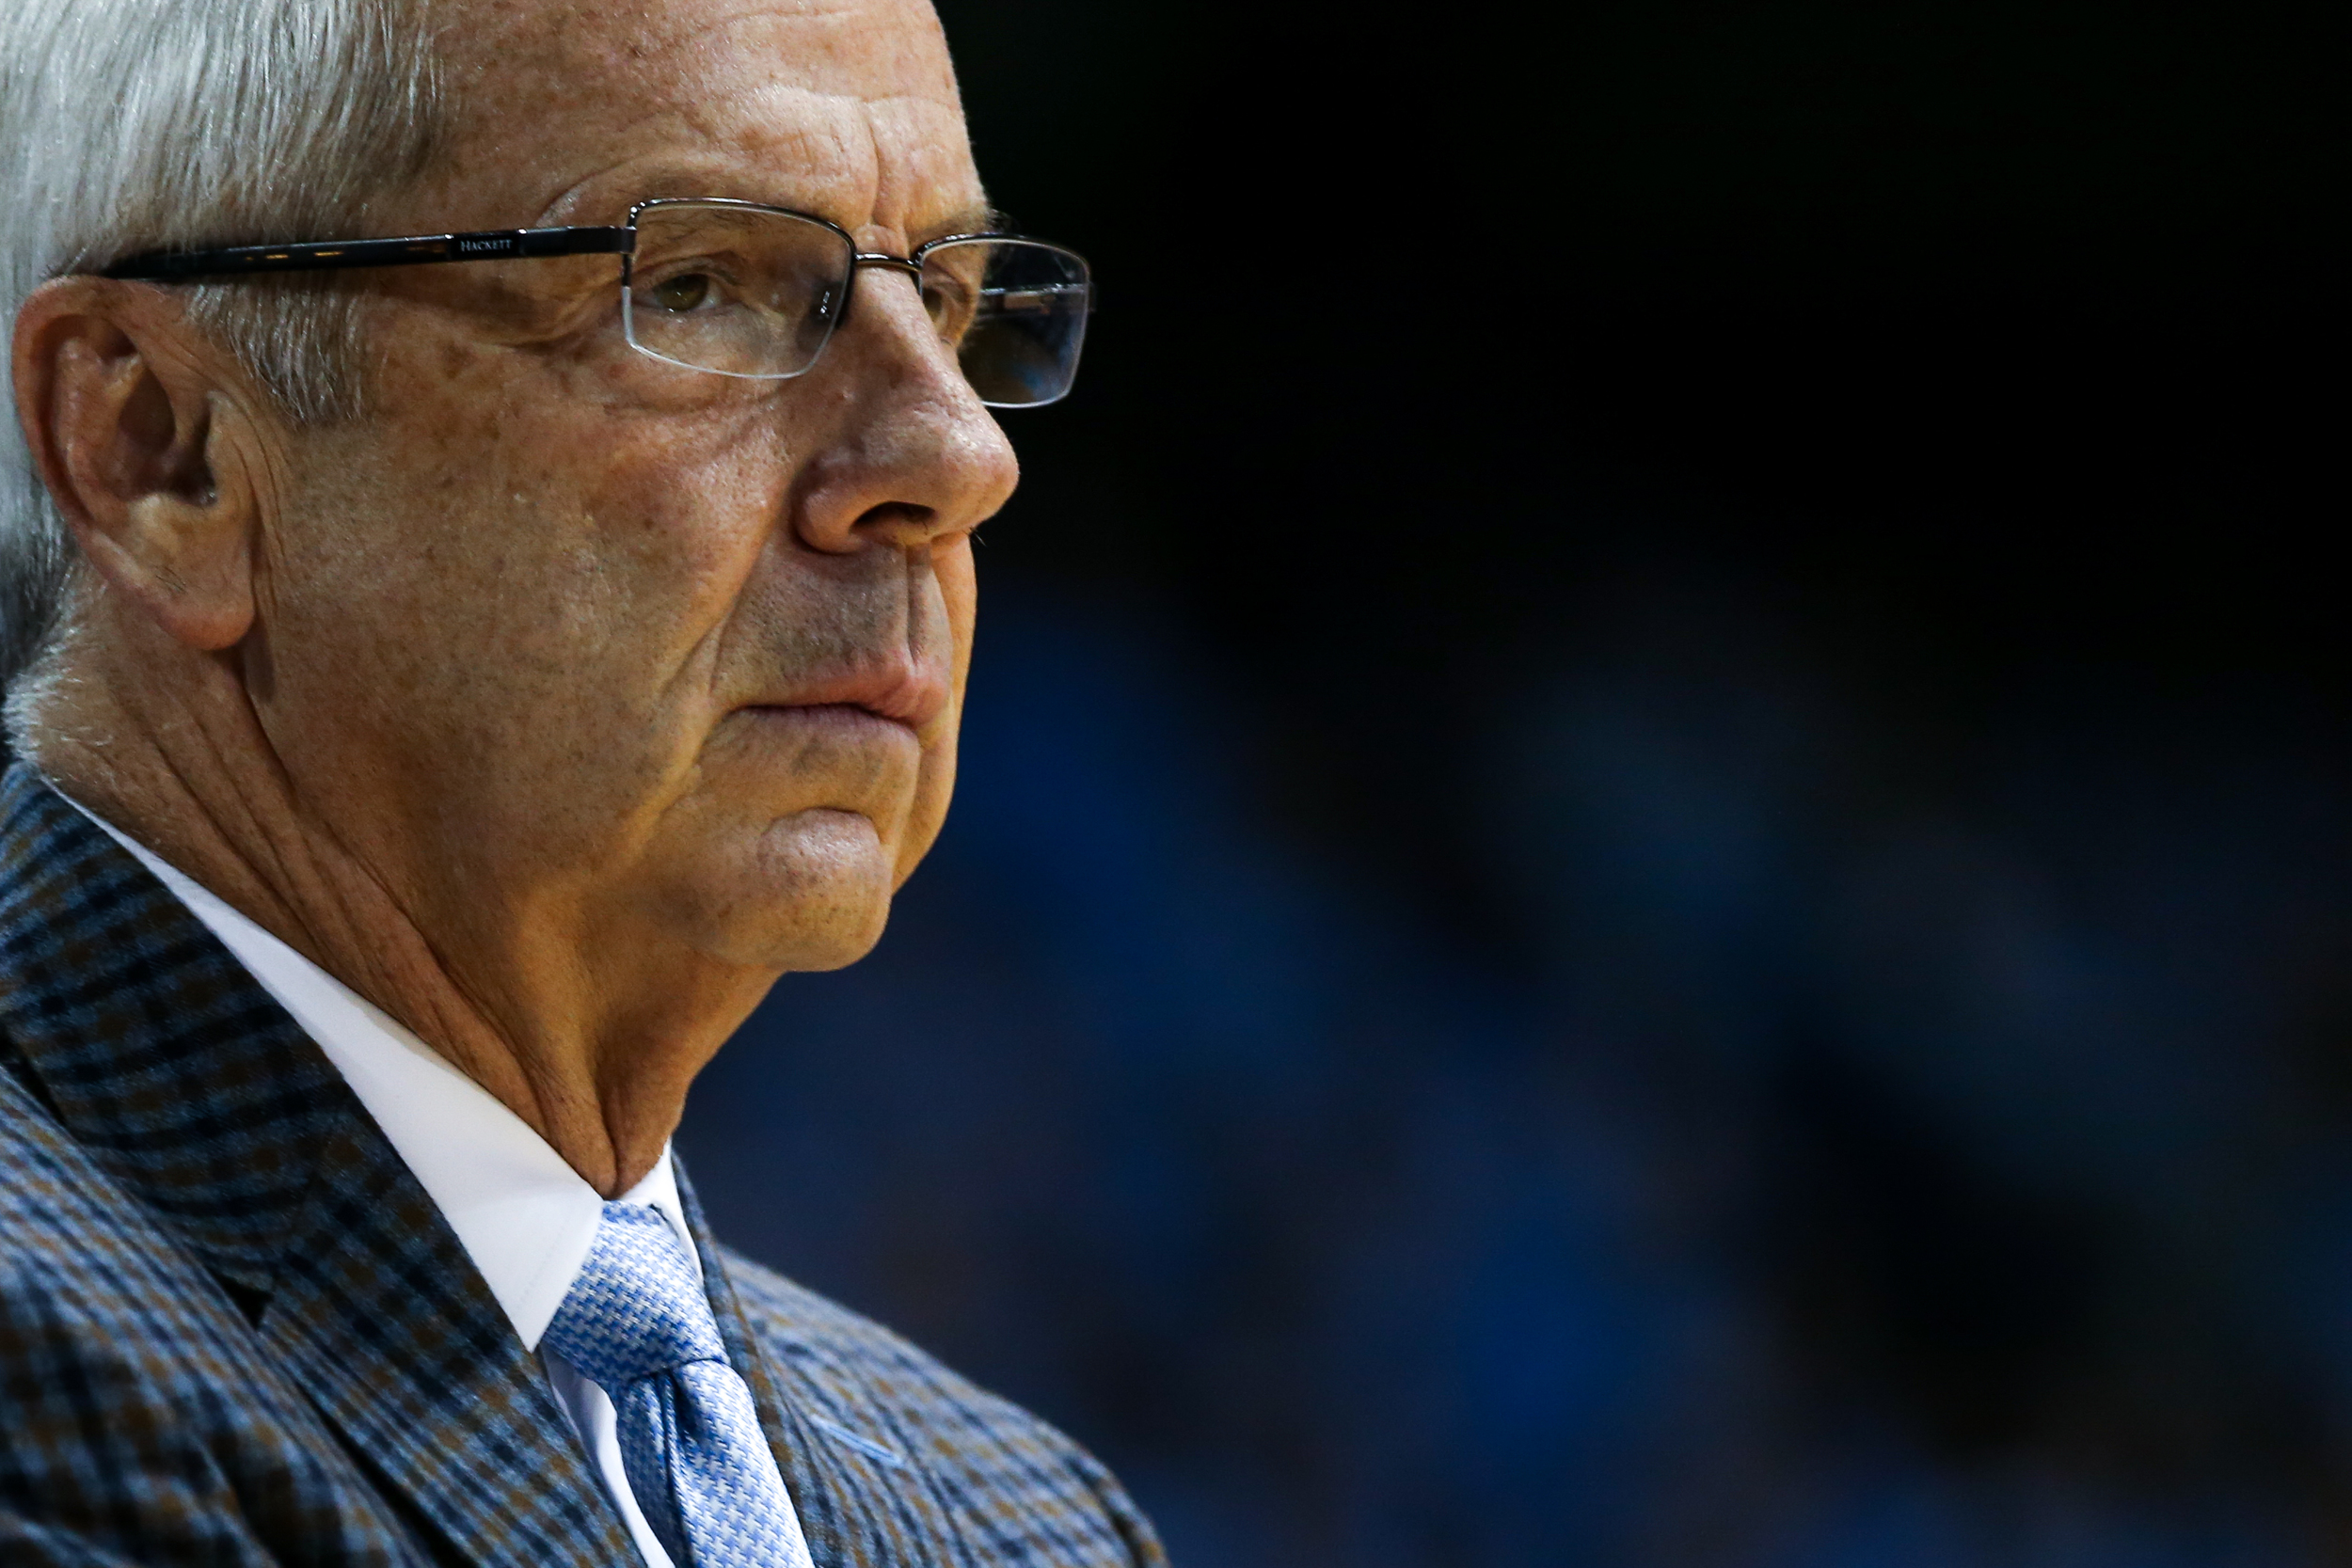 North Carolina's Coach Roy Williams strategizes during the men's preseason exhibition game against Guilford at the Dean Smith Center on Friday, Nov. 6, 2015. UNC defeated Guilford 99-49.